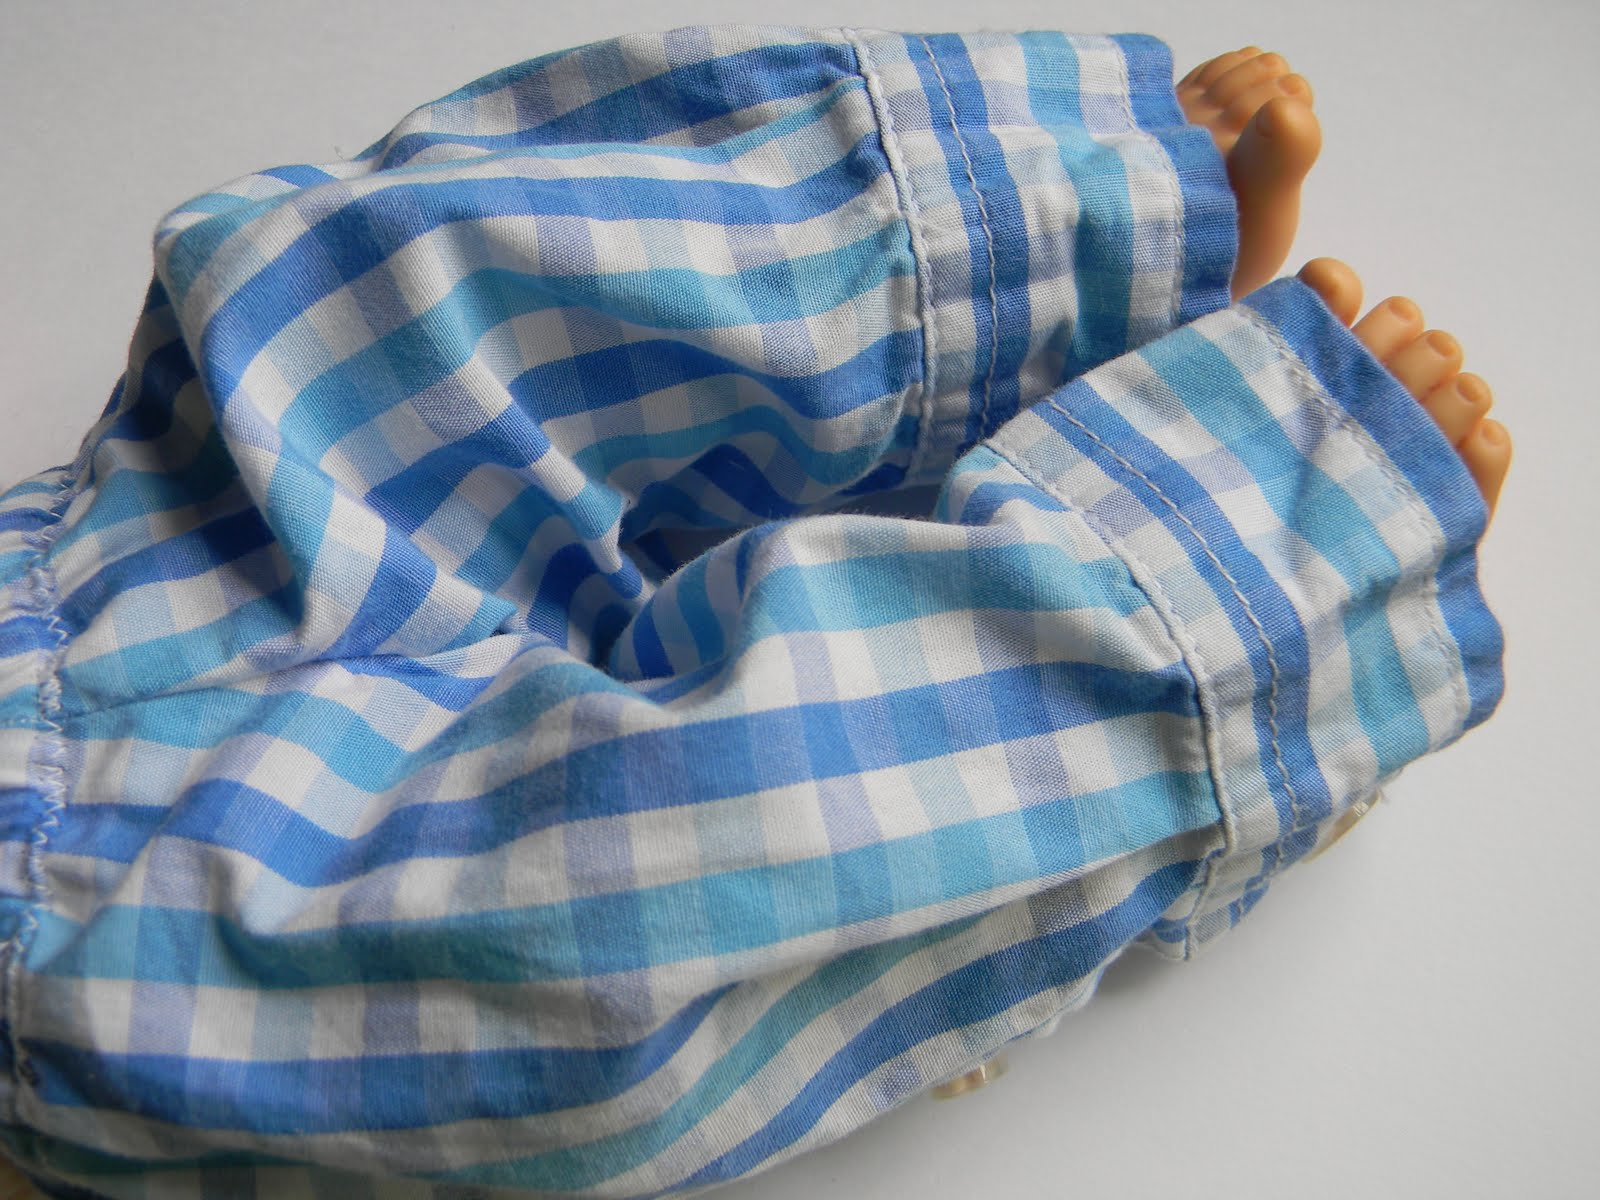 Upcycling A Boys Shirt Into Baby Doll Clothes